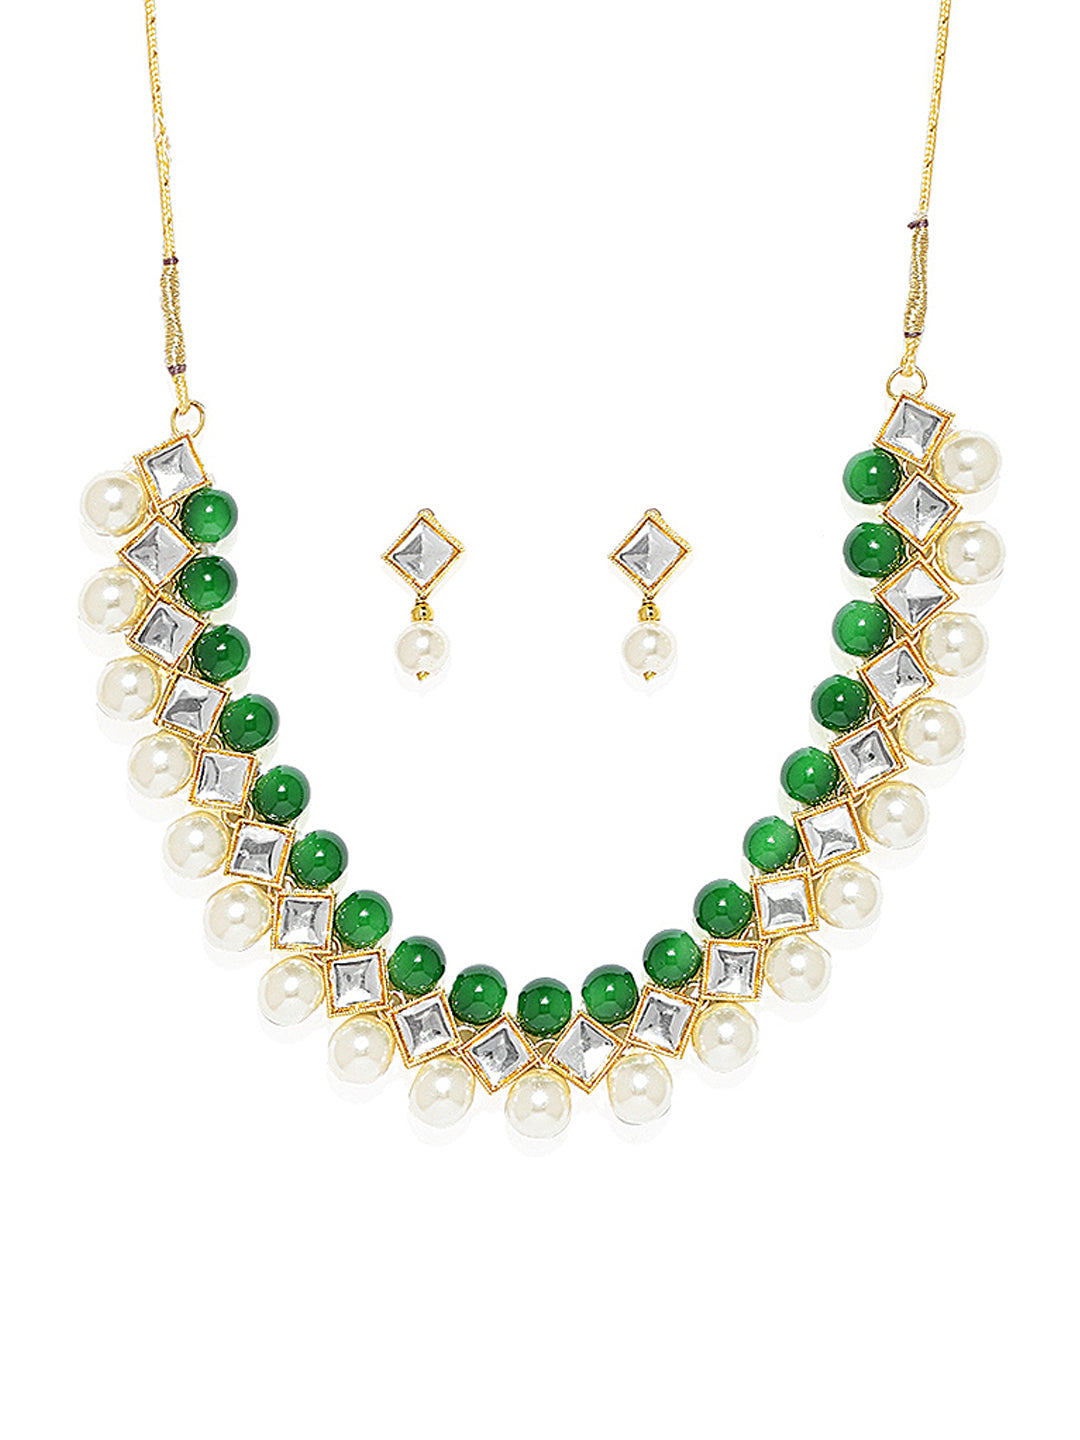 Zaveri Pearls Beautiful Kundan And Pearl Necklace Set-ZAVERI PEARLS1-Necklace Set